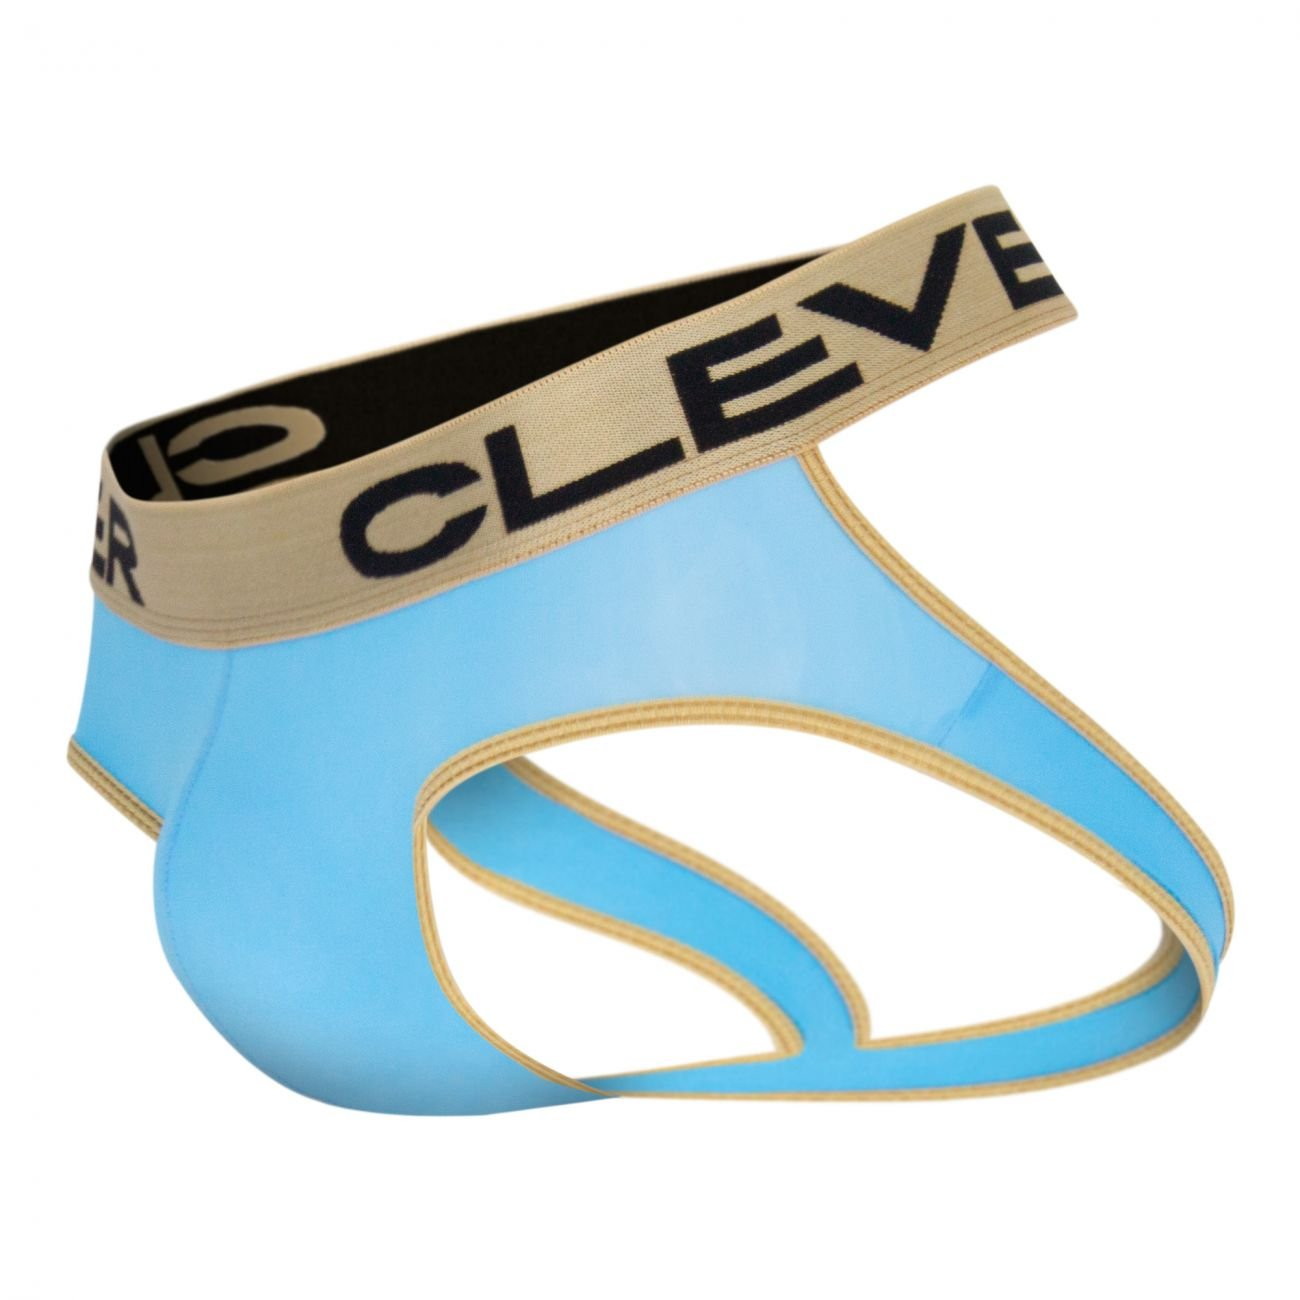 Clever Masculine Mens Jockstrap Underwear for Men